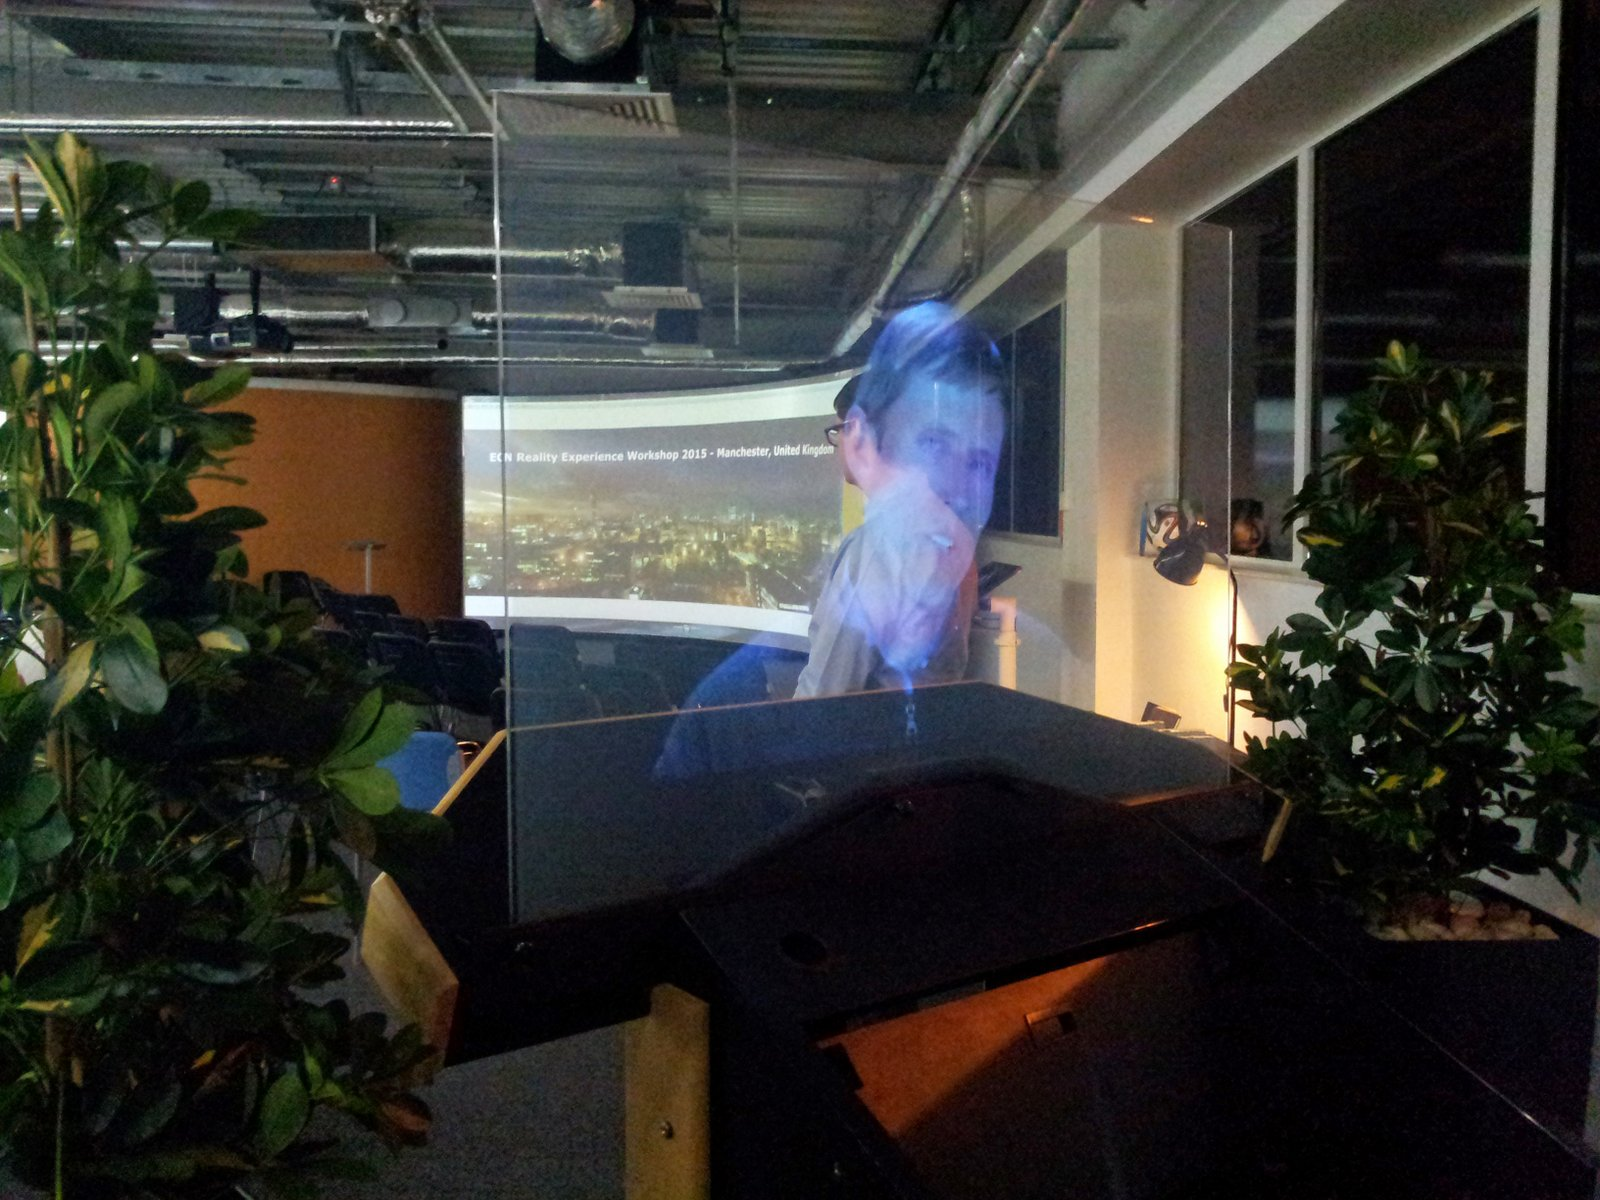 Holographic Projection